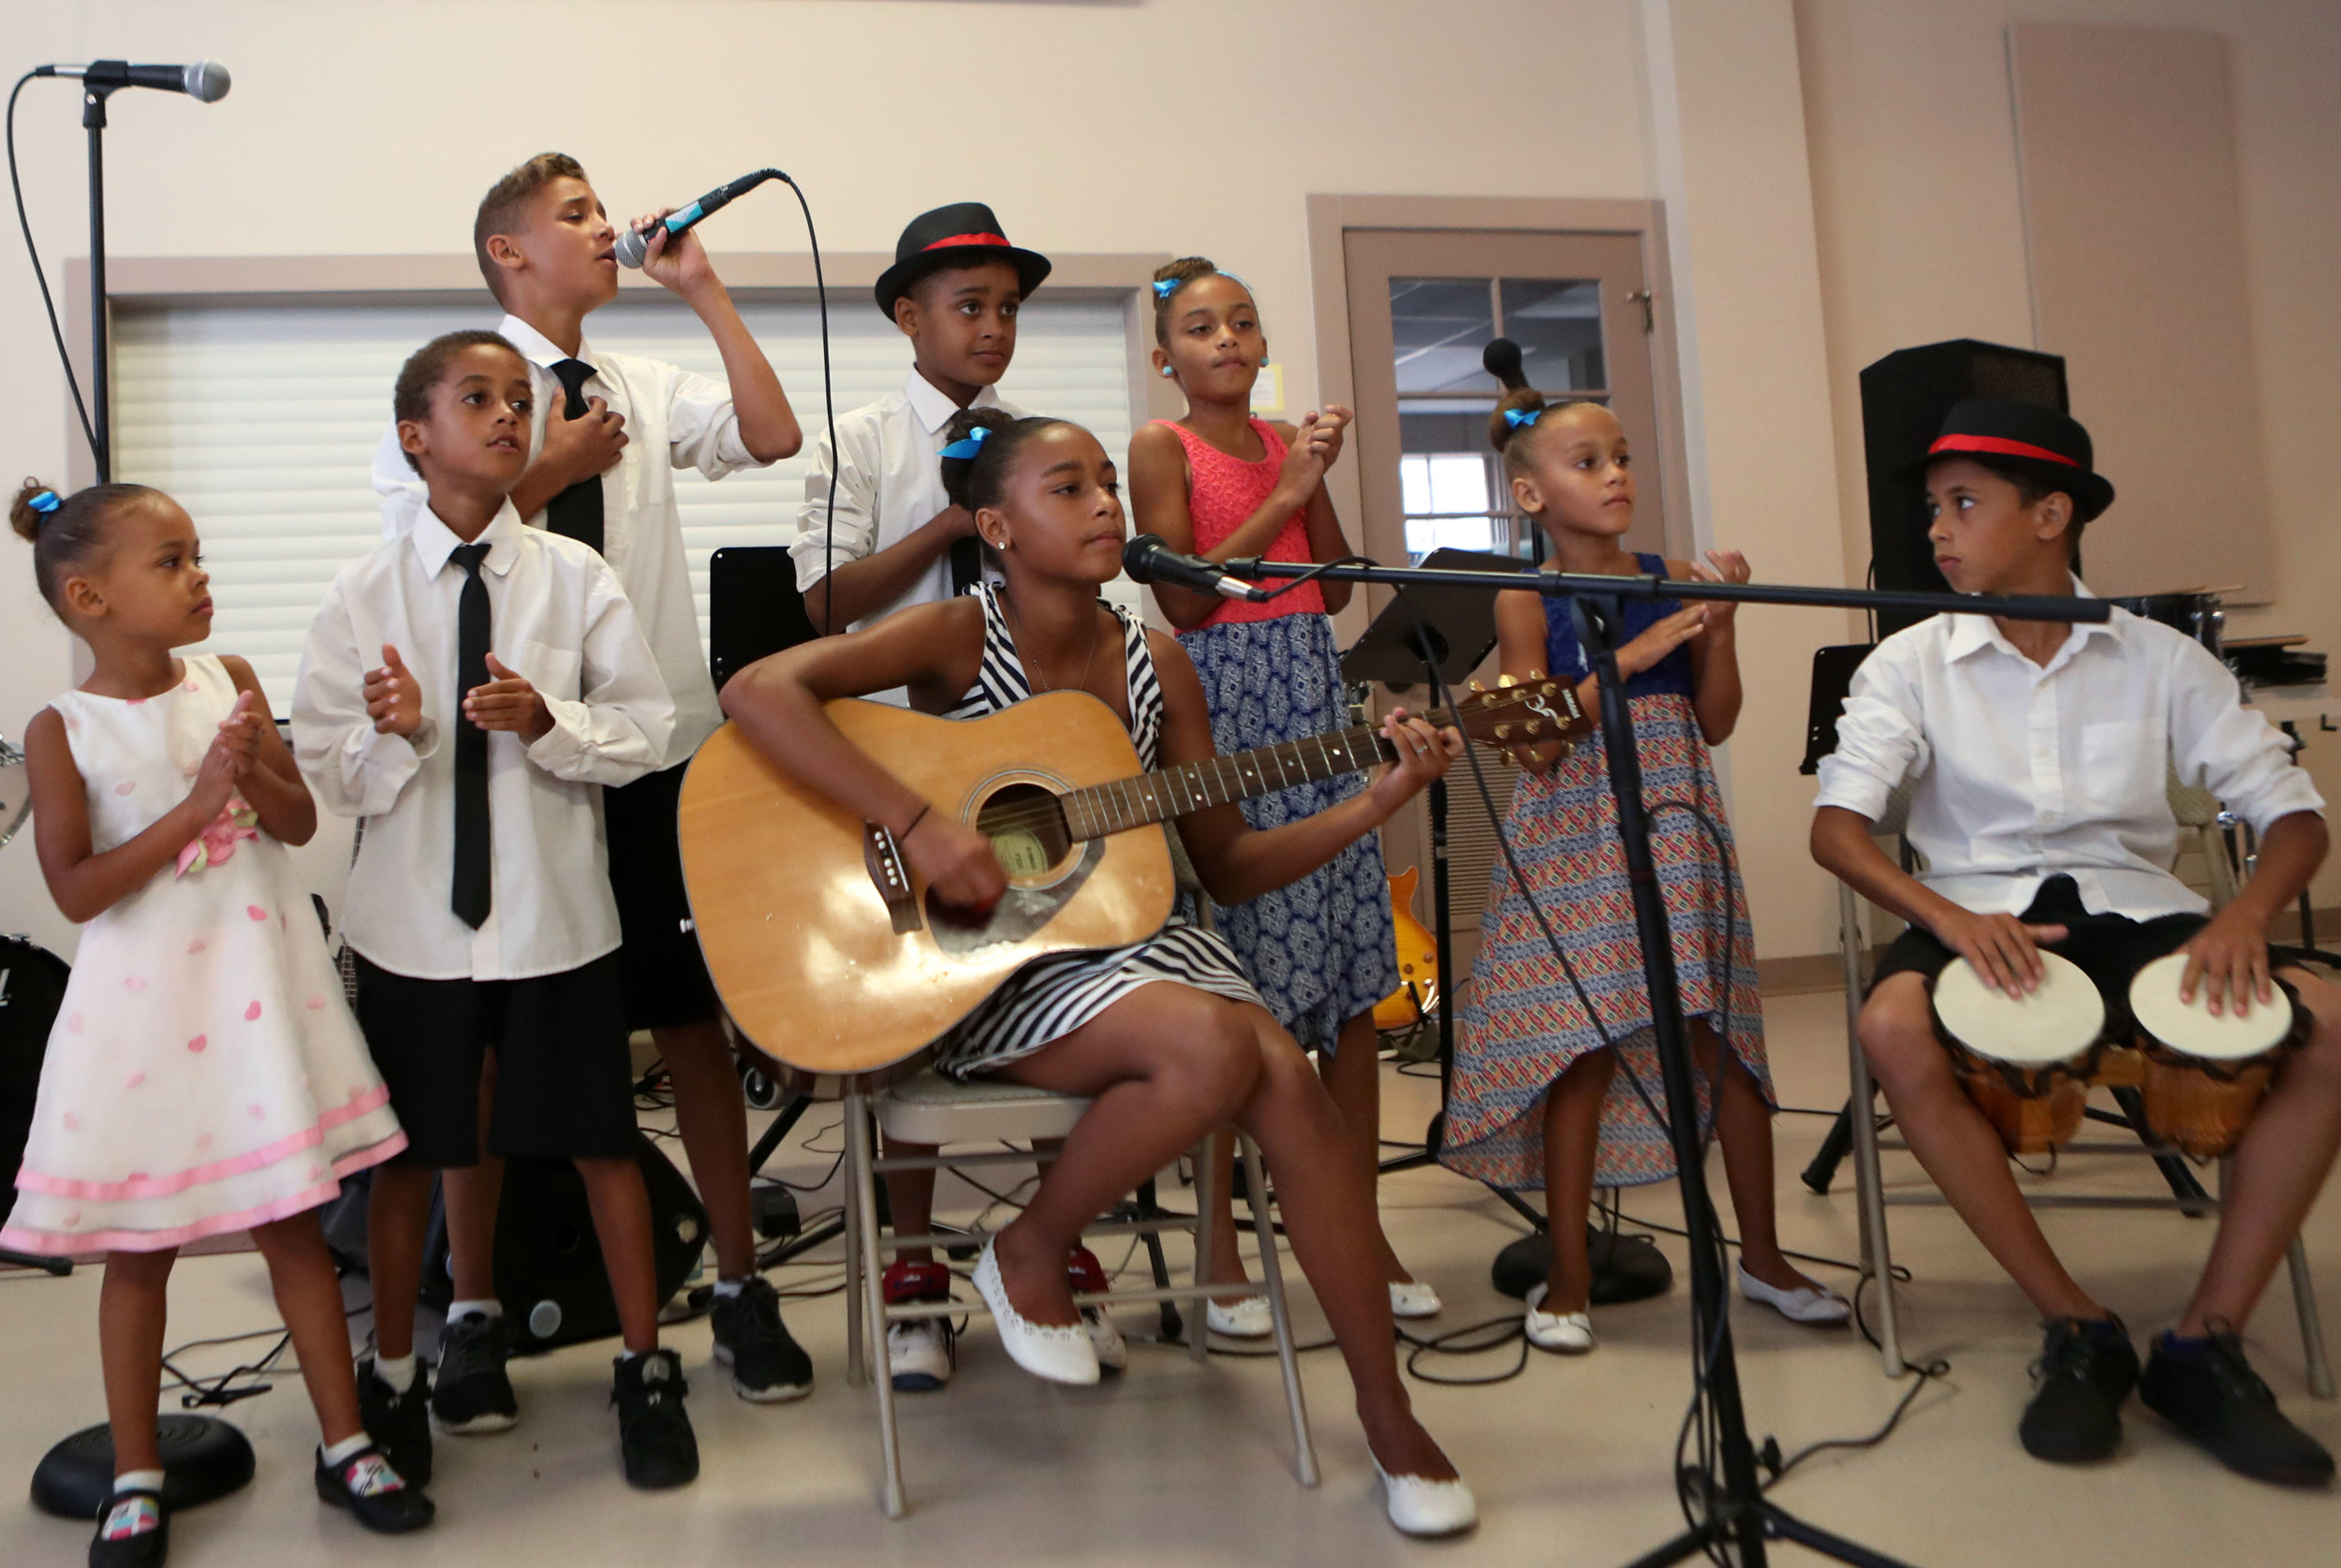 Kemuel White leads the K White family band as they perform a song for an audience at the First Lutheran Church in Galveston on Thursday, June 21, 2018. Nine of the children have been given scholarships and attend classes at Fanfare!, which is associated with the church.